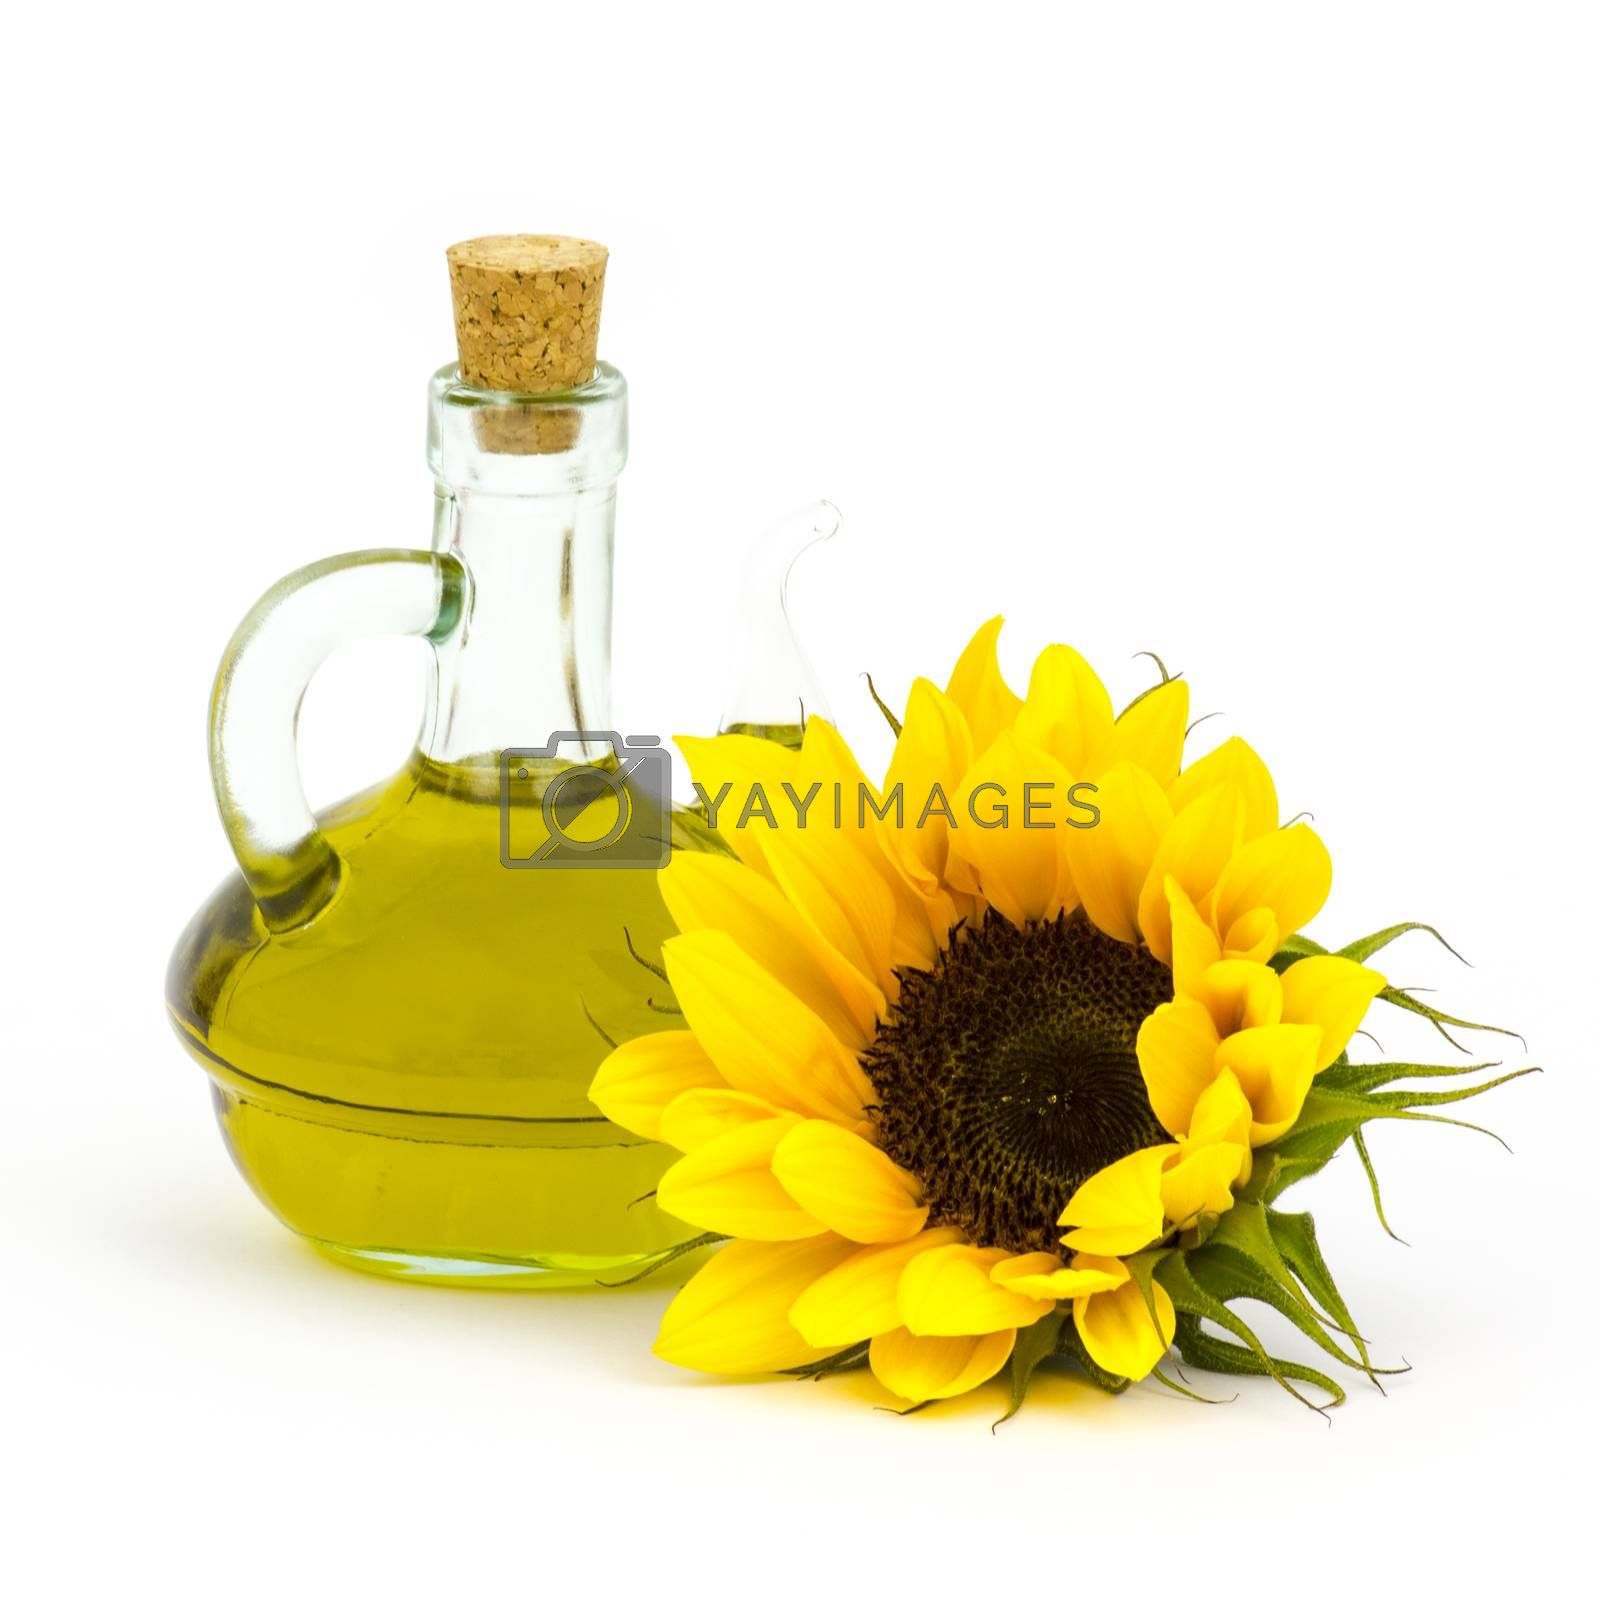 sunflower oil and sunflowers isolated on white background